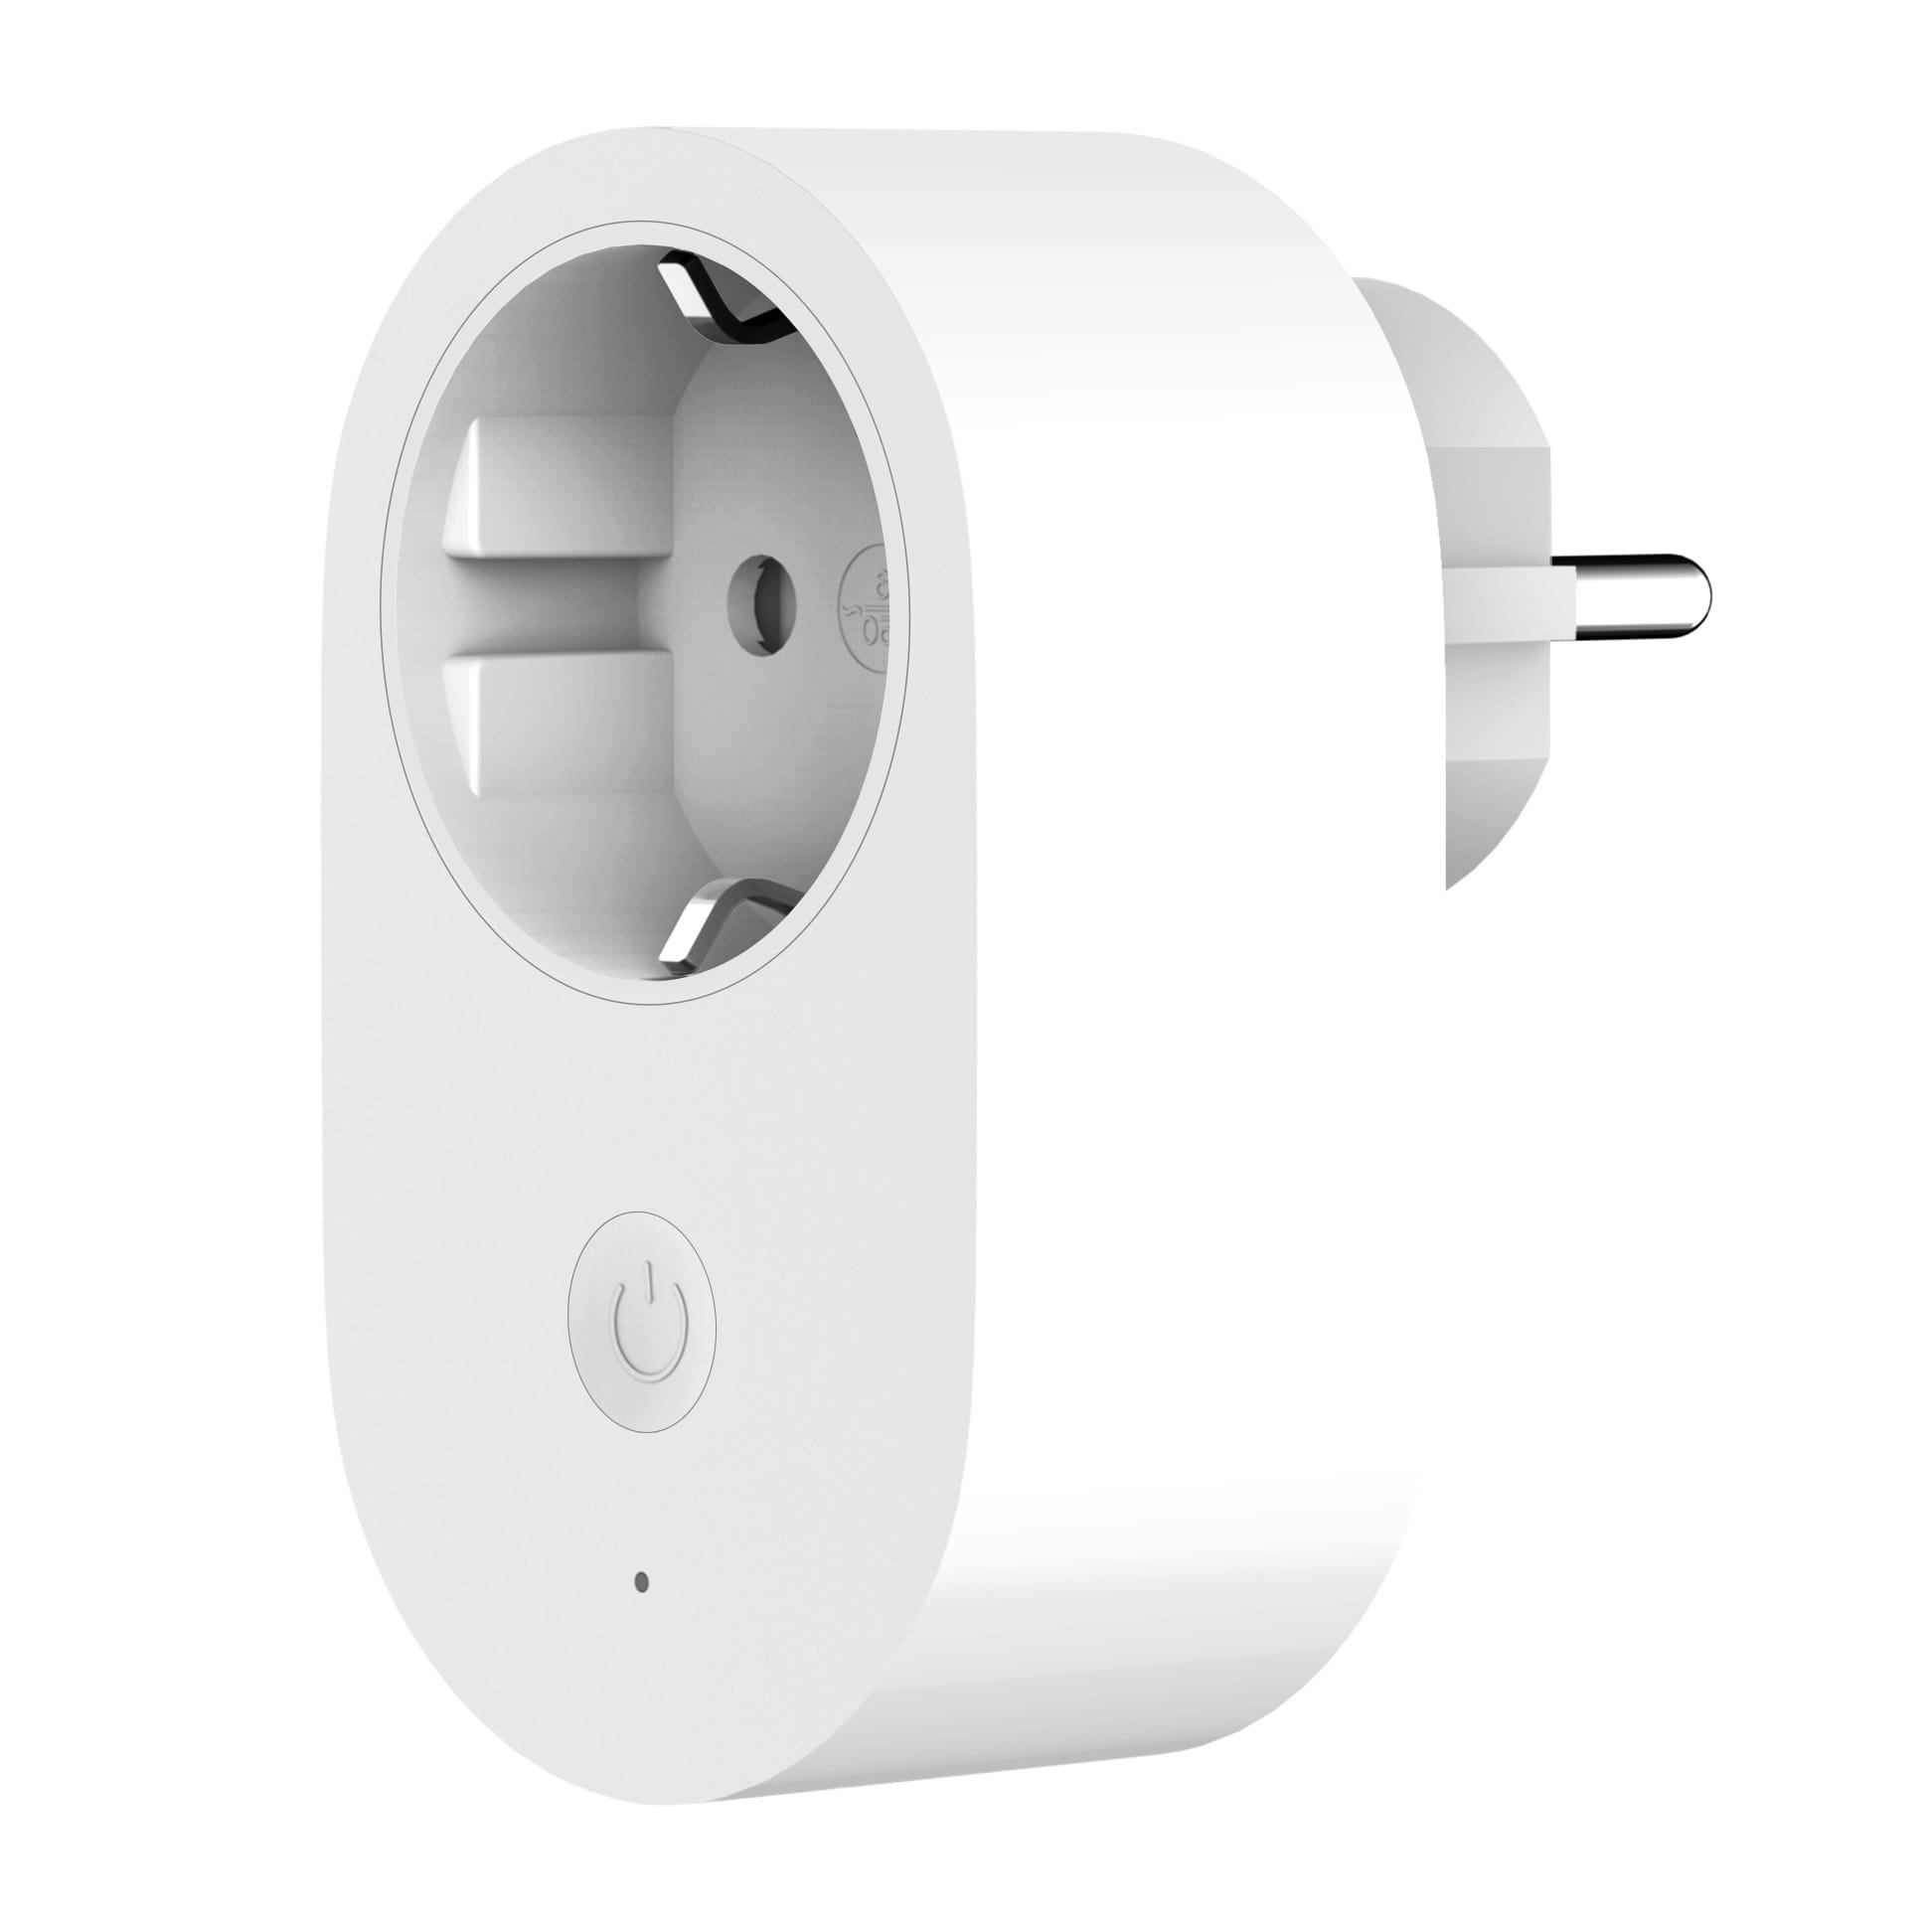 Умная розетка Xiaomi Mi Smart Wi-Fi Power Plug ZNCZ05CM - белый